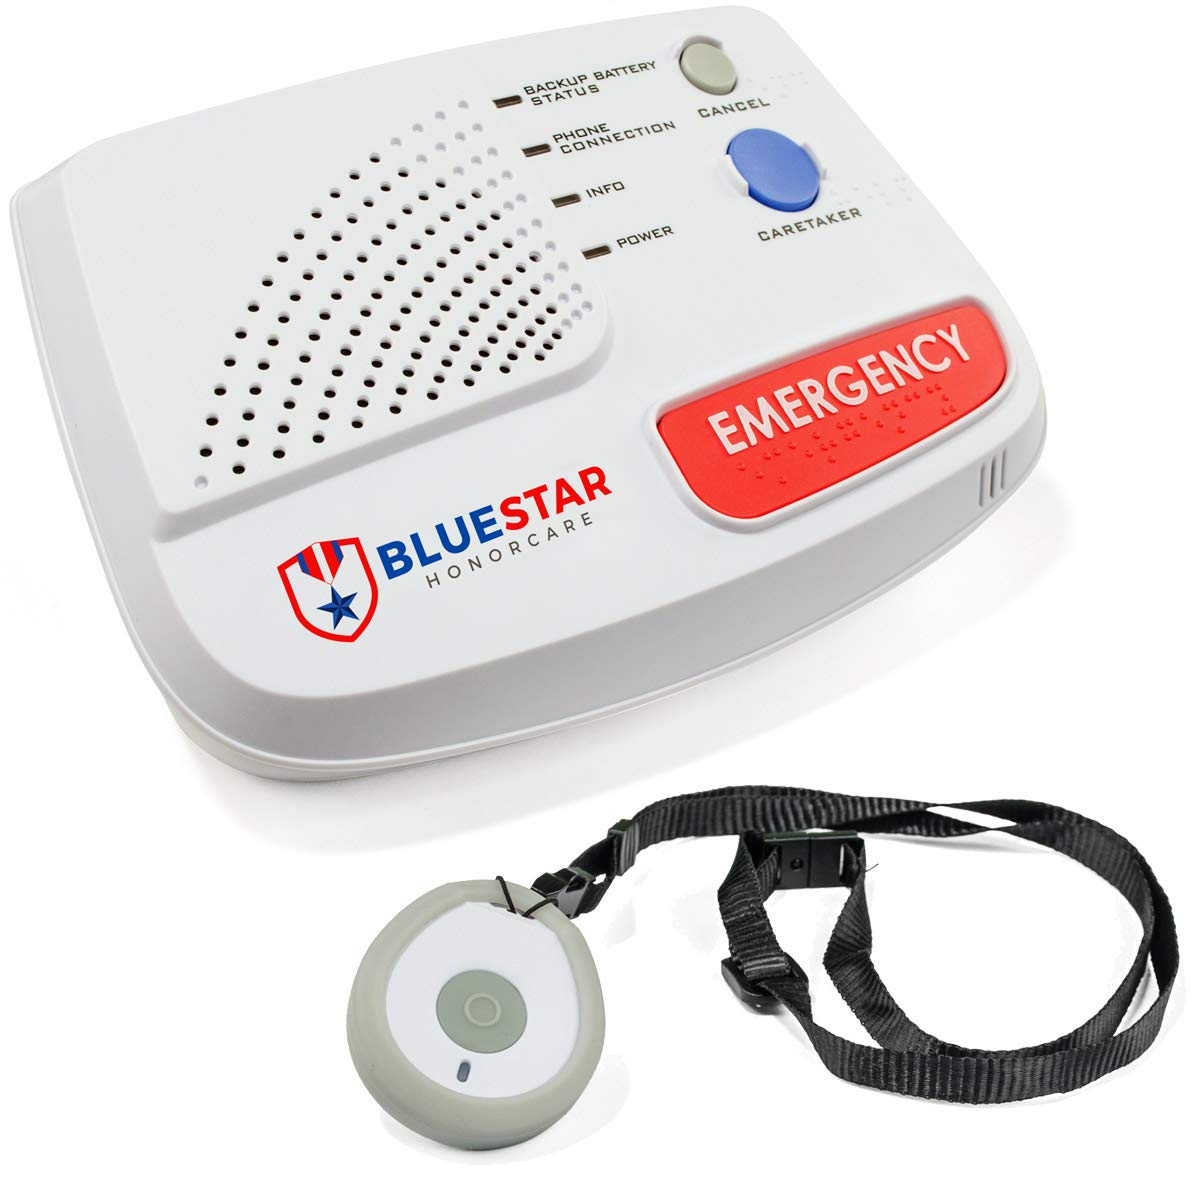 Sentry in-Home Medical Alert by BlueStar SeniorTech | Emergency Safety System for Seniors | 24/7 Monitor Response | One-Touch Help Button (Includes One Month Free) by BlueStar SeniorTech